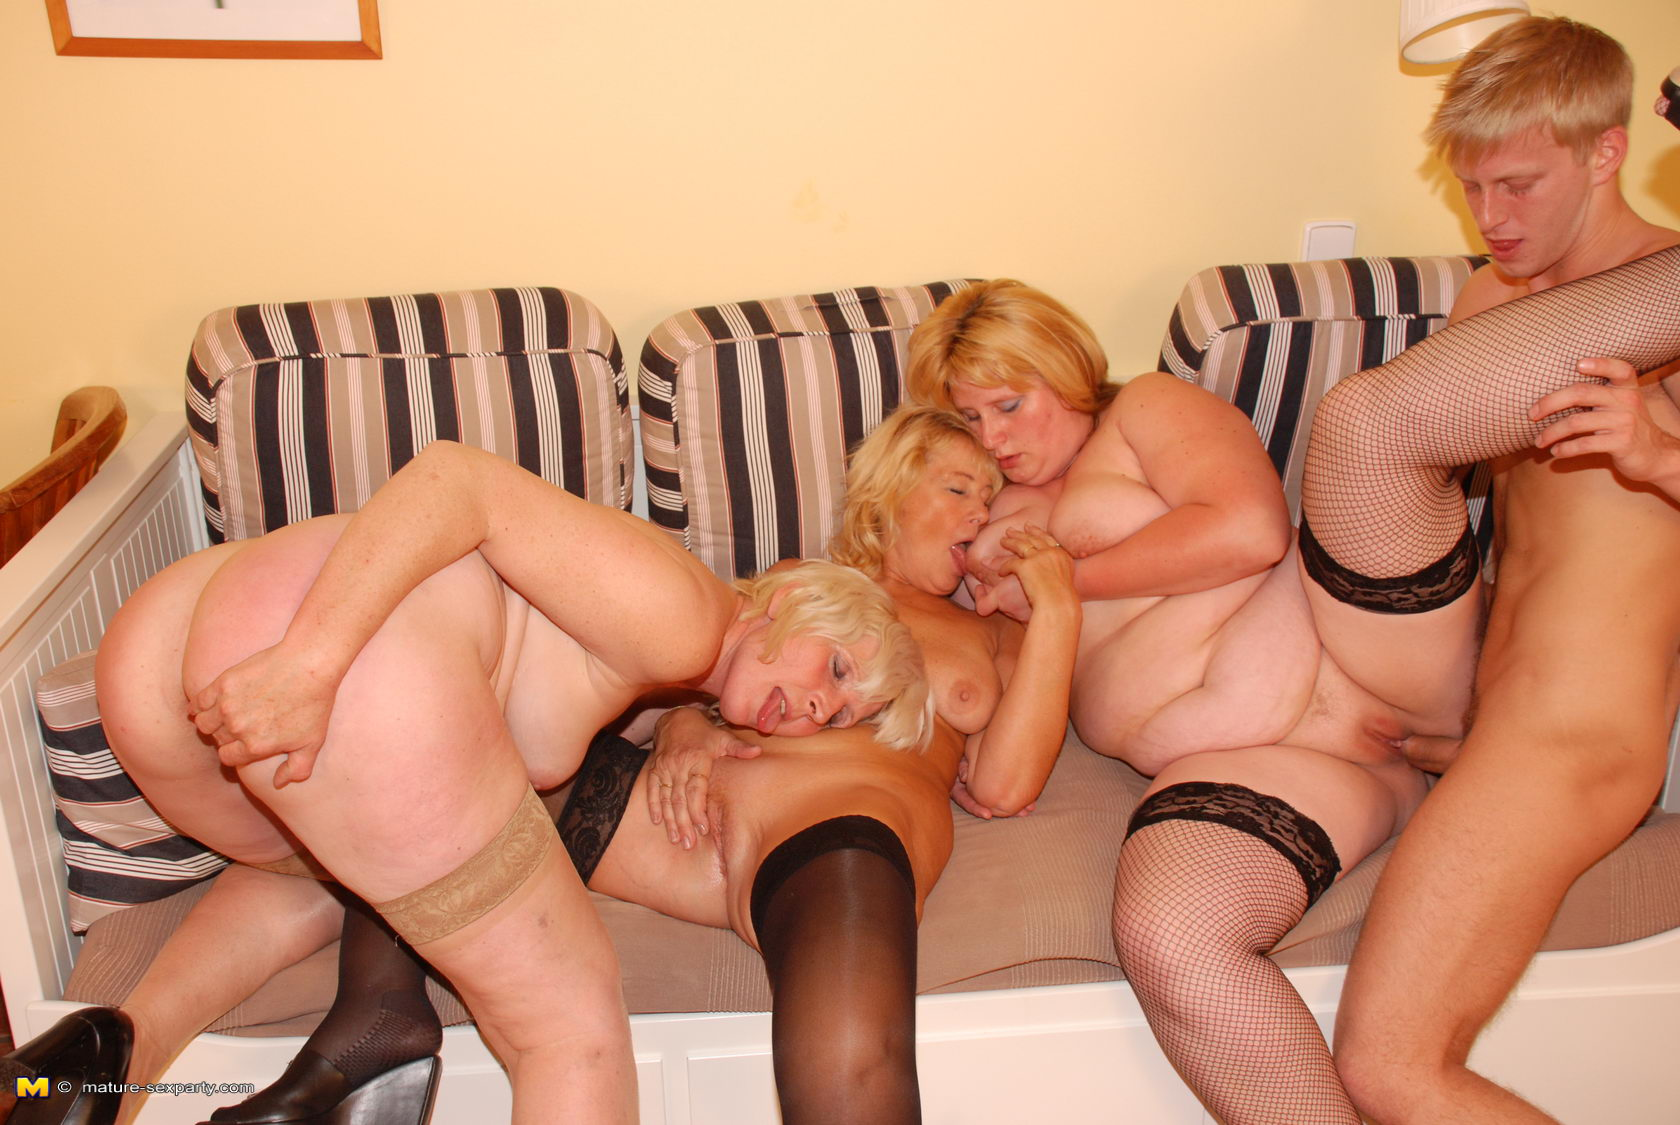 3 mature ladies in groups sex with younger guy part 3 9